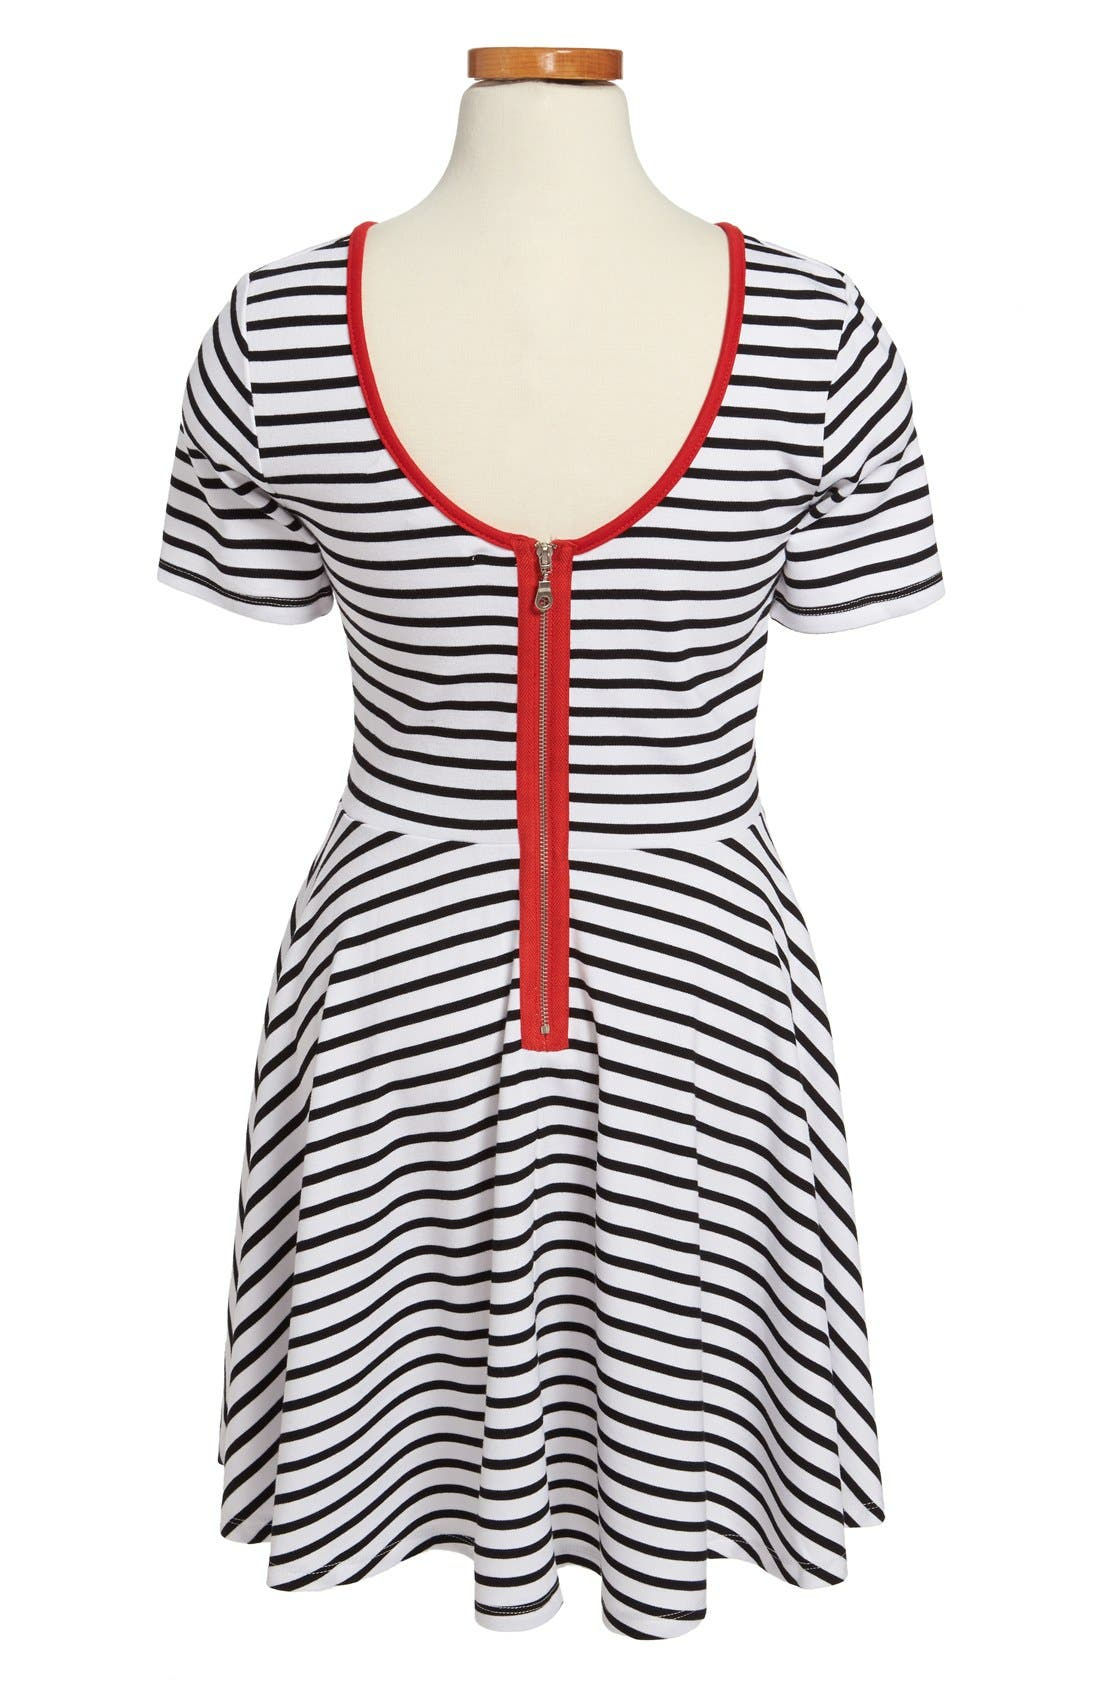 Alternate Image 2  - Miss Behave 'Lacey' Ponte Knit Stripe Skater Dress (Big Girls)